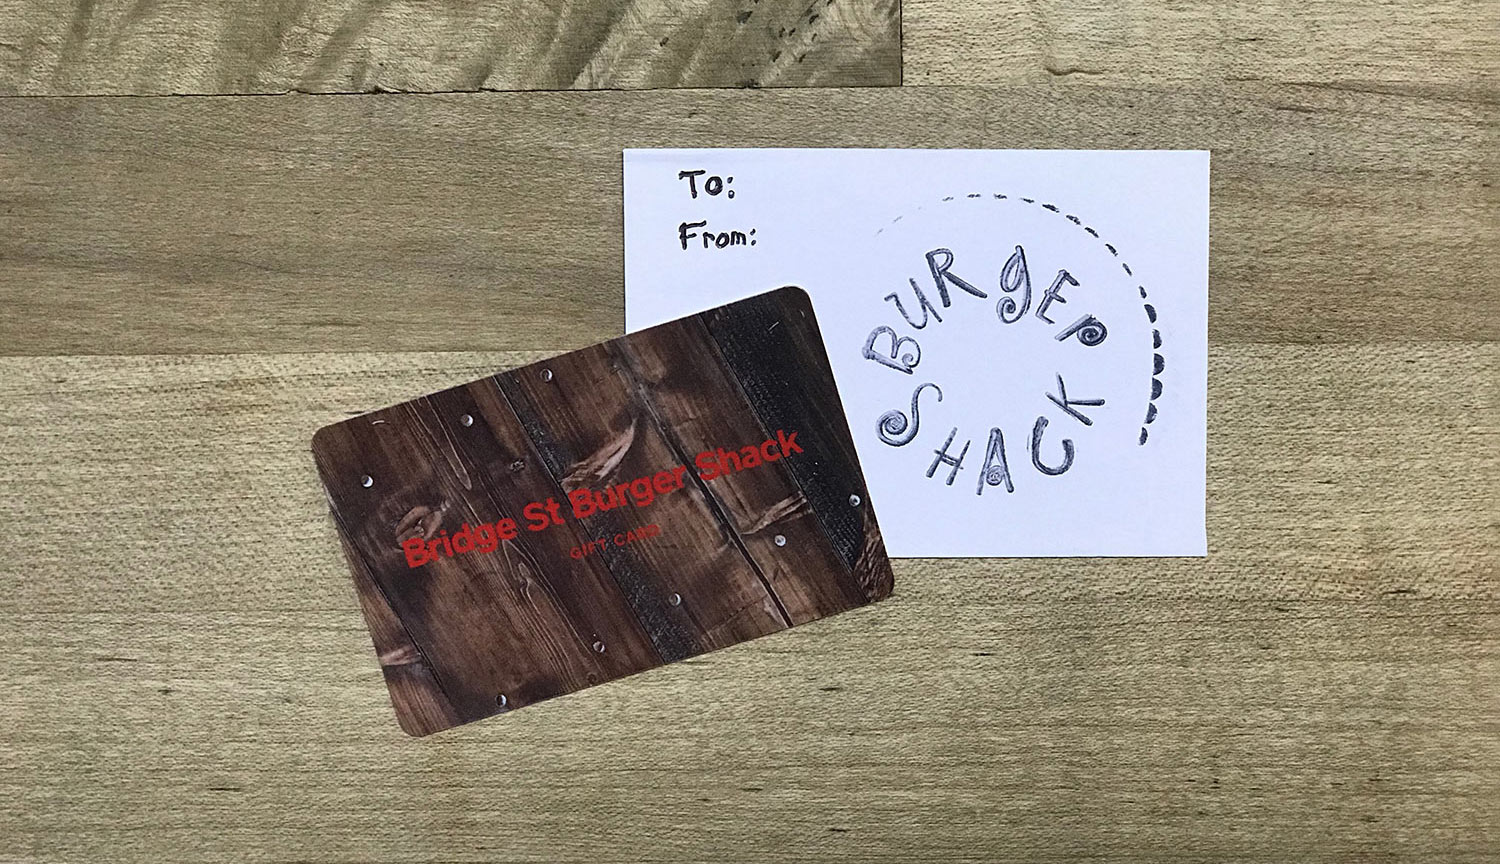 Burger Shack Gift Cards and Merhandise